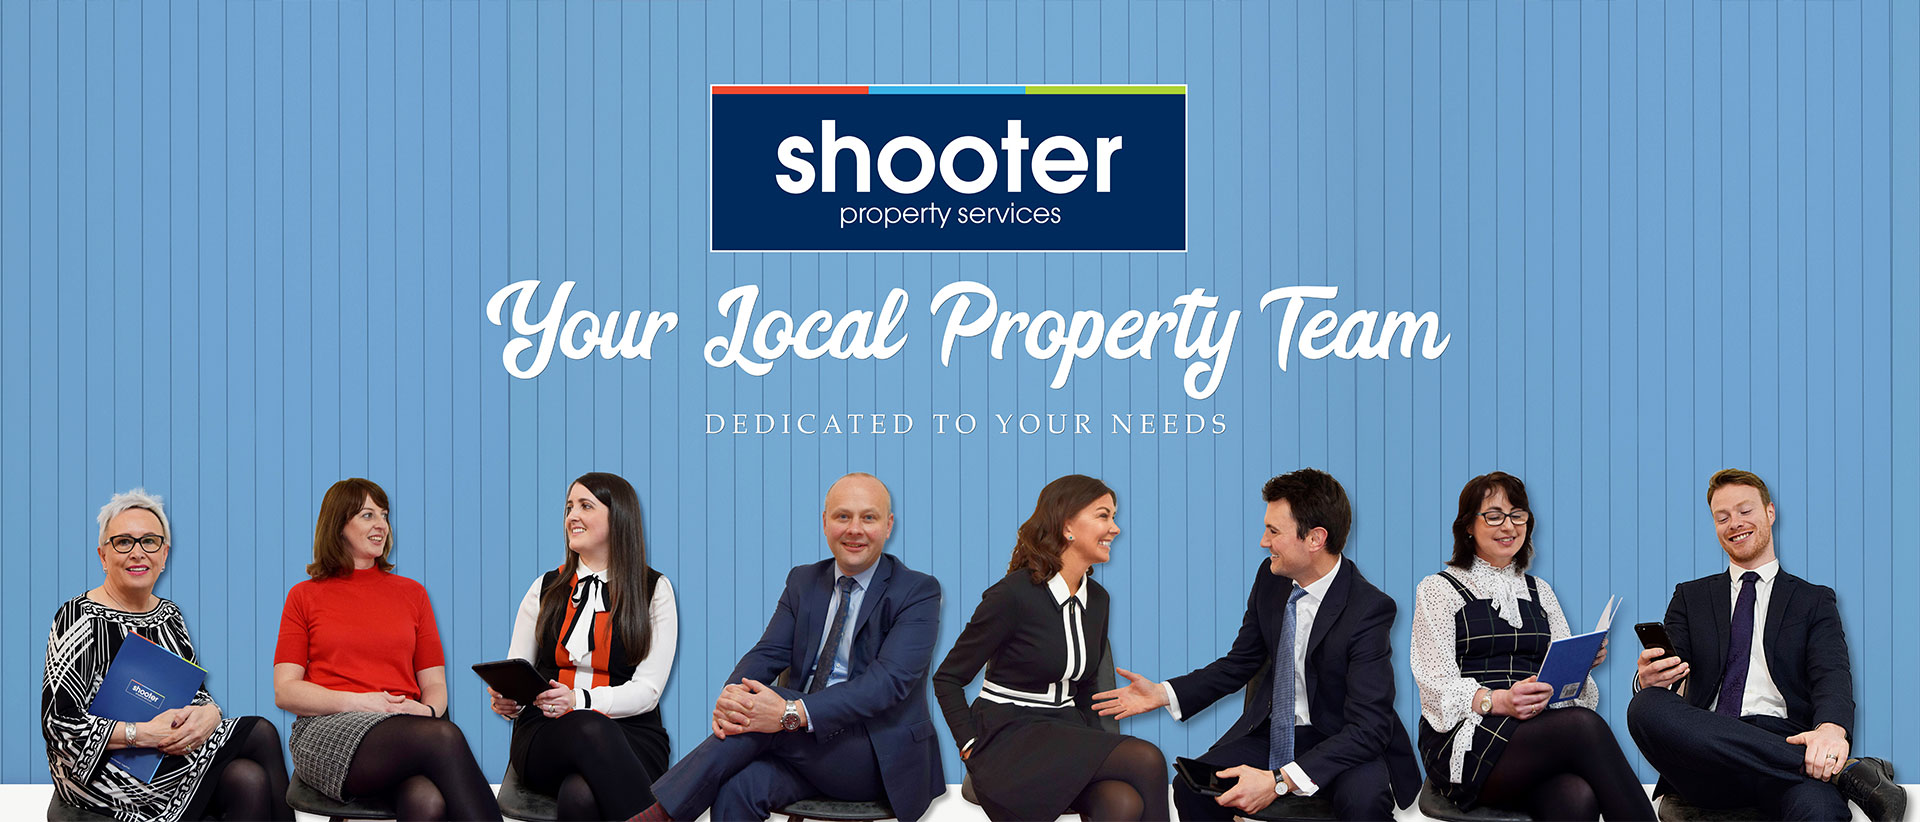 Shooter Property Services (Banbridge) Group Shot